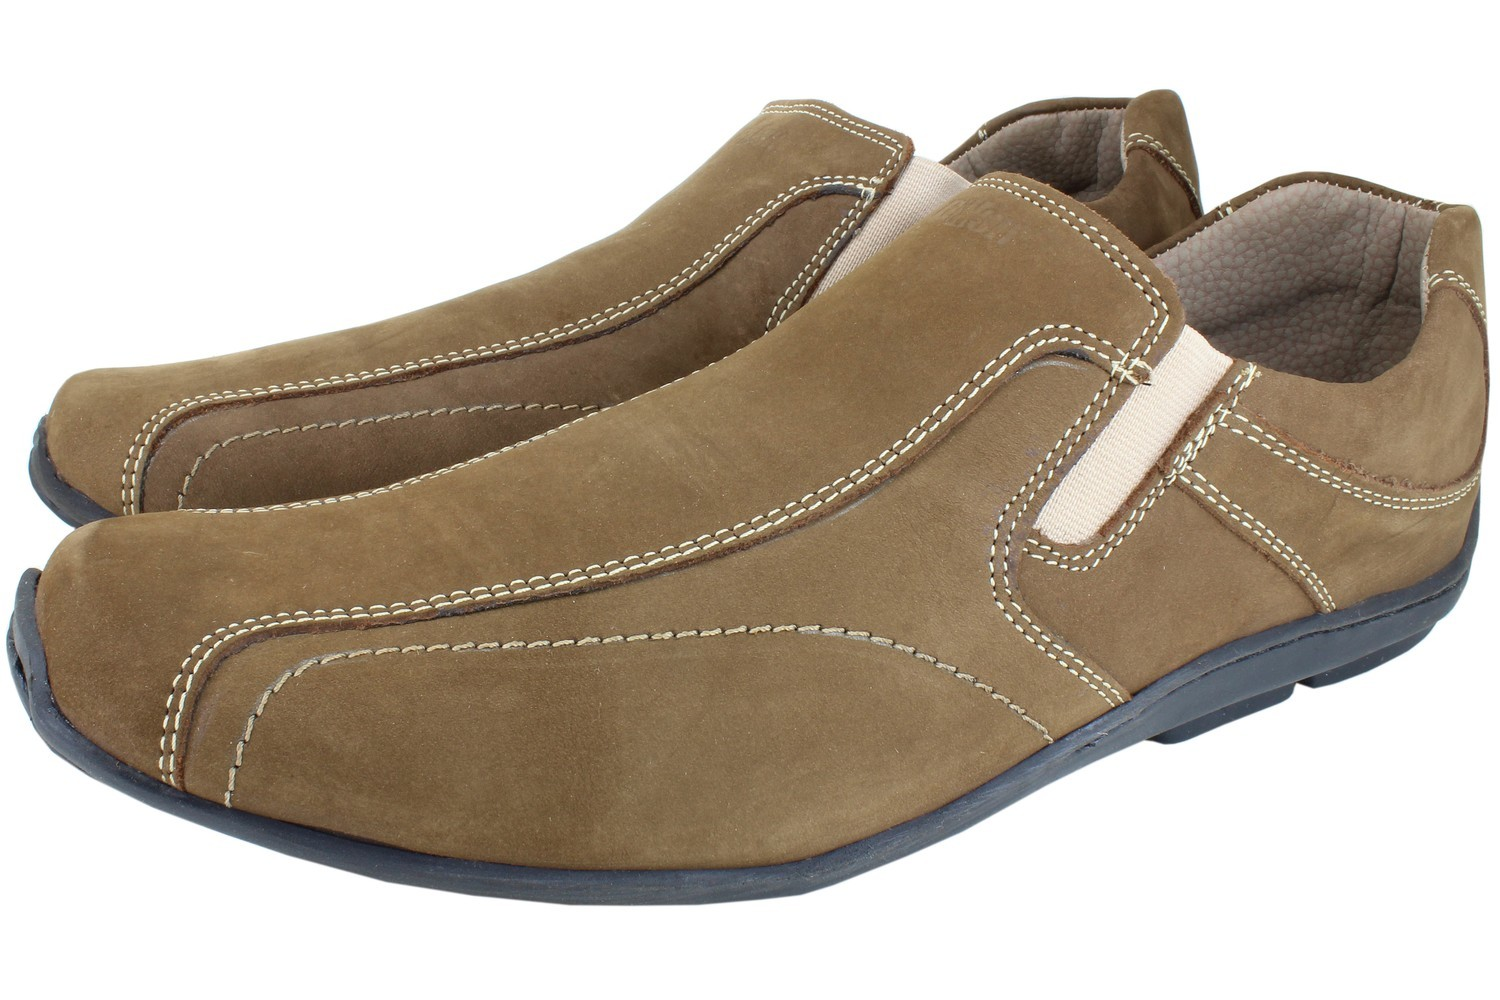 Mens Shoes Genuine Nubuck Leather Light Brown - SUGGESTED RETAIL PRICE $45 - WHOLESALE PRICE $8.5 - Minimum purchase 12 pairs